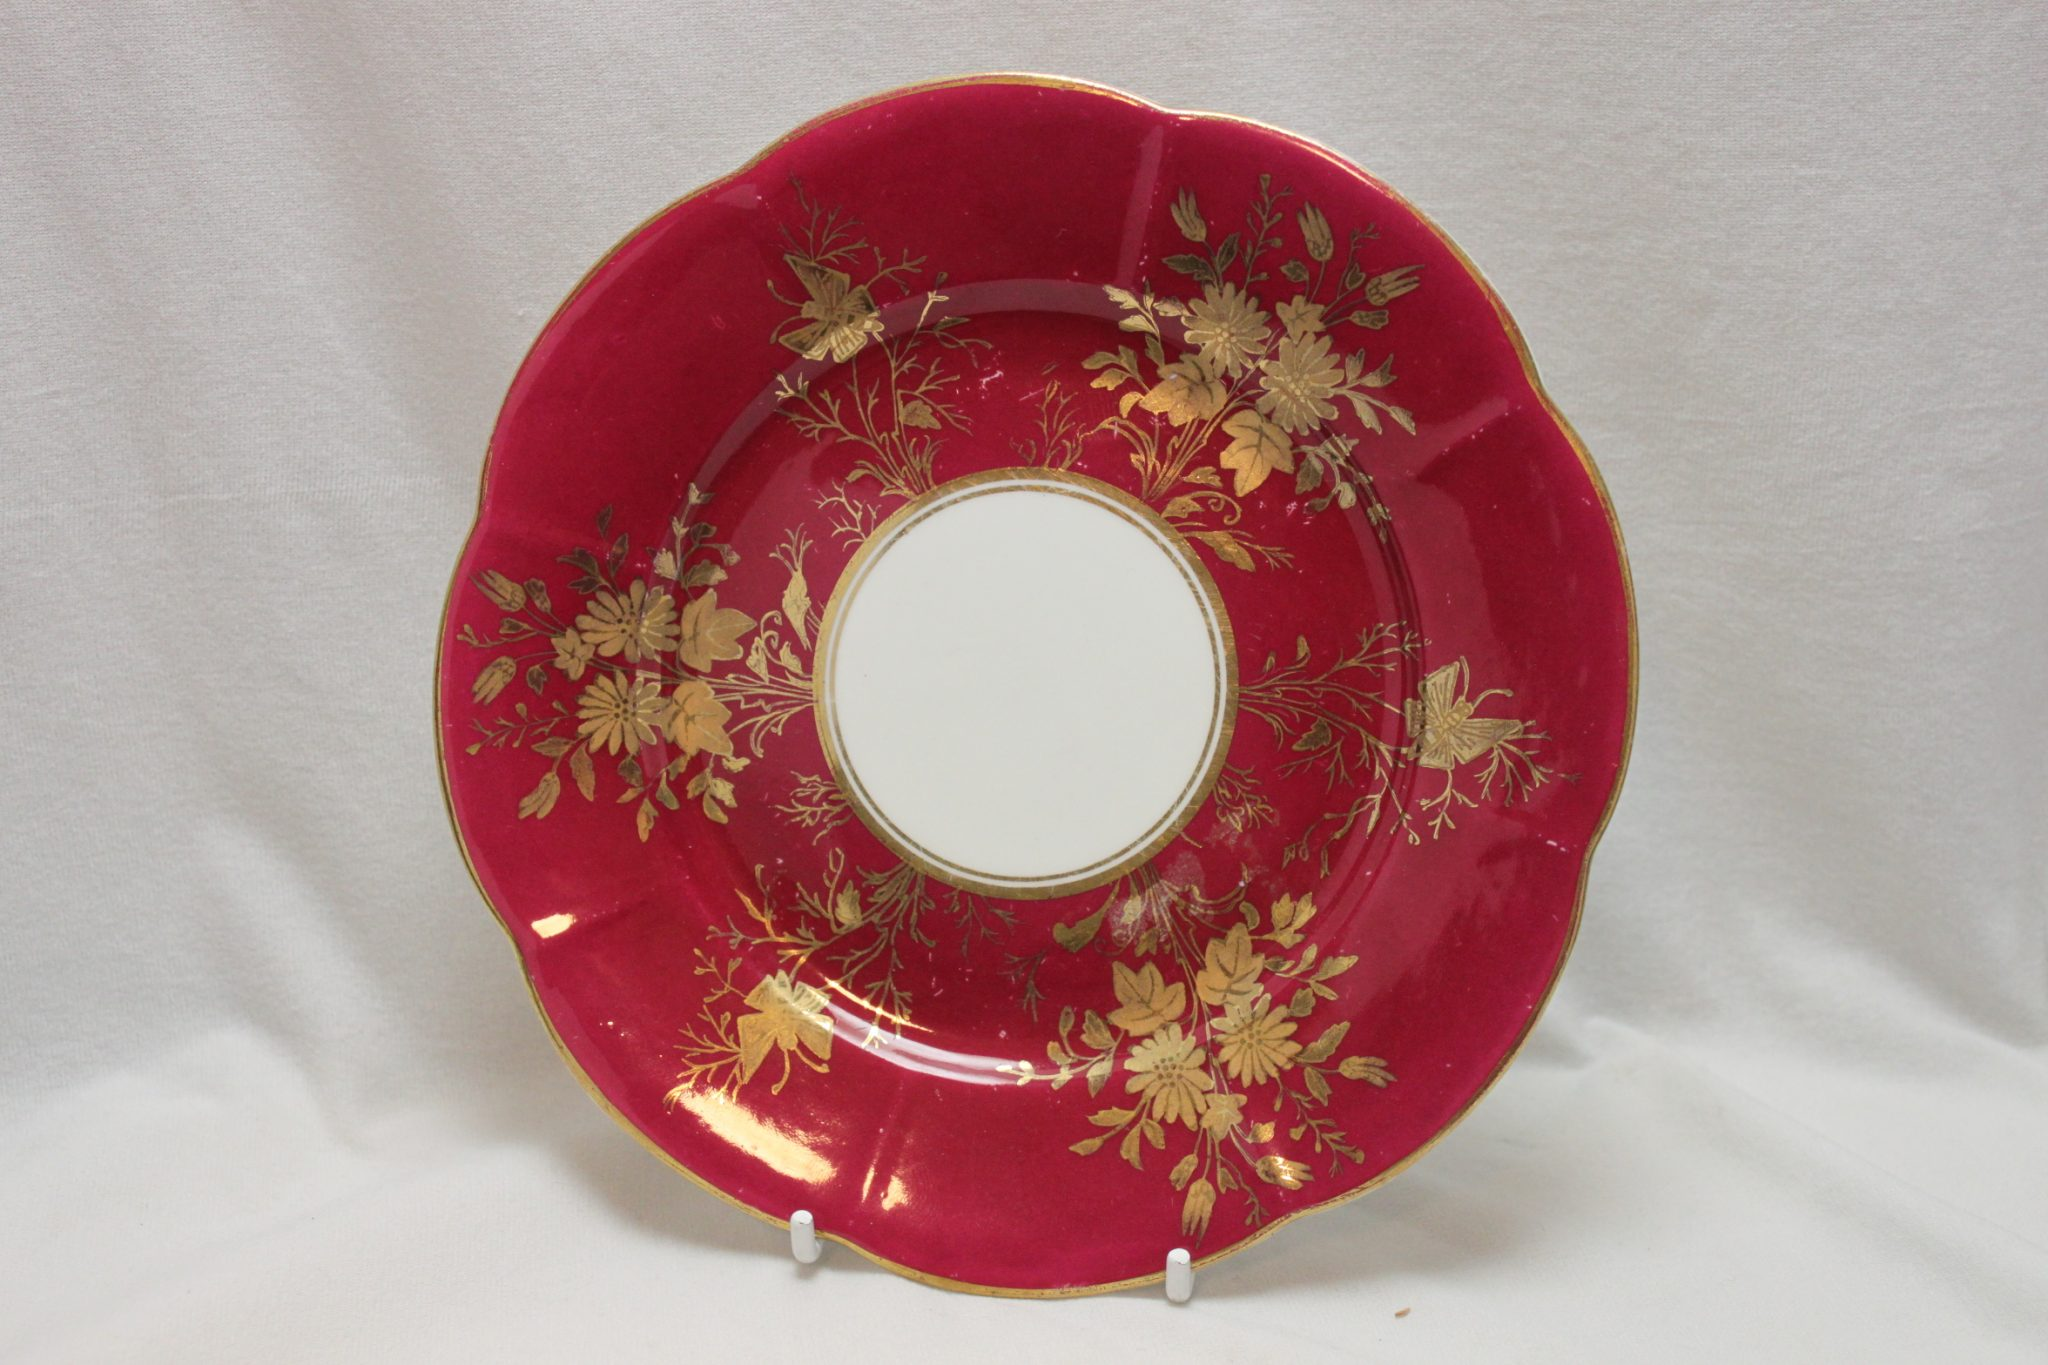 Wileman small plate Daisy & butterfly pattern 3818